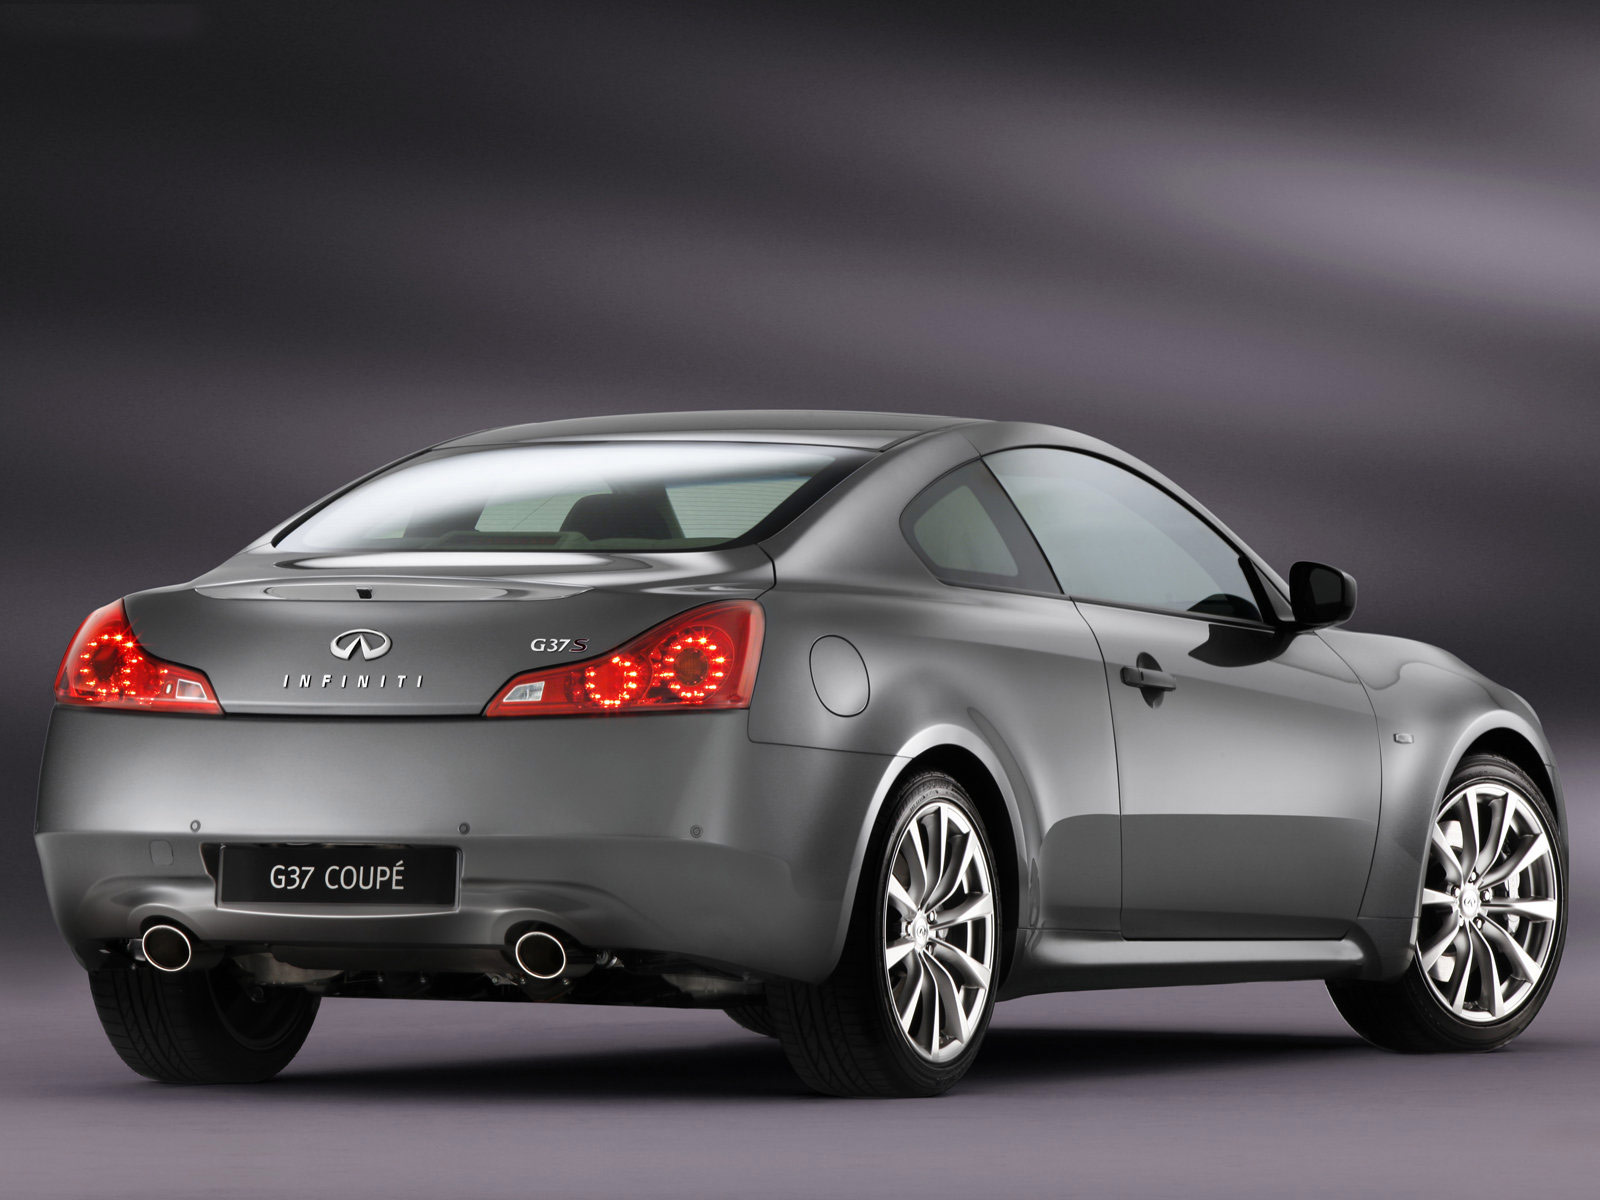 Infiniti G37 Coupe Wallpapers Accident Lawyers Information